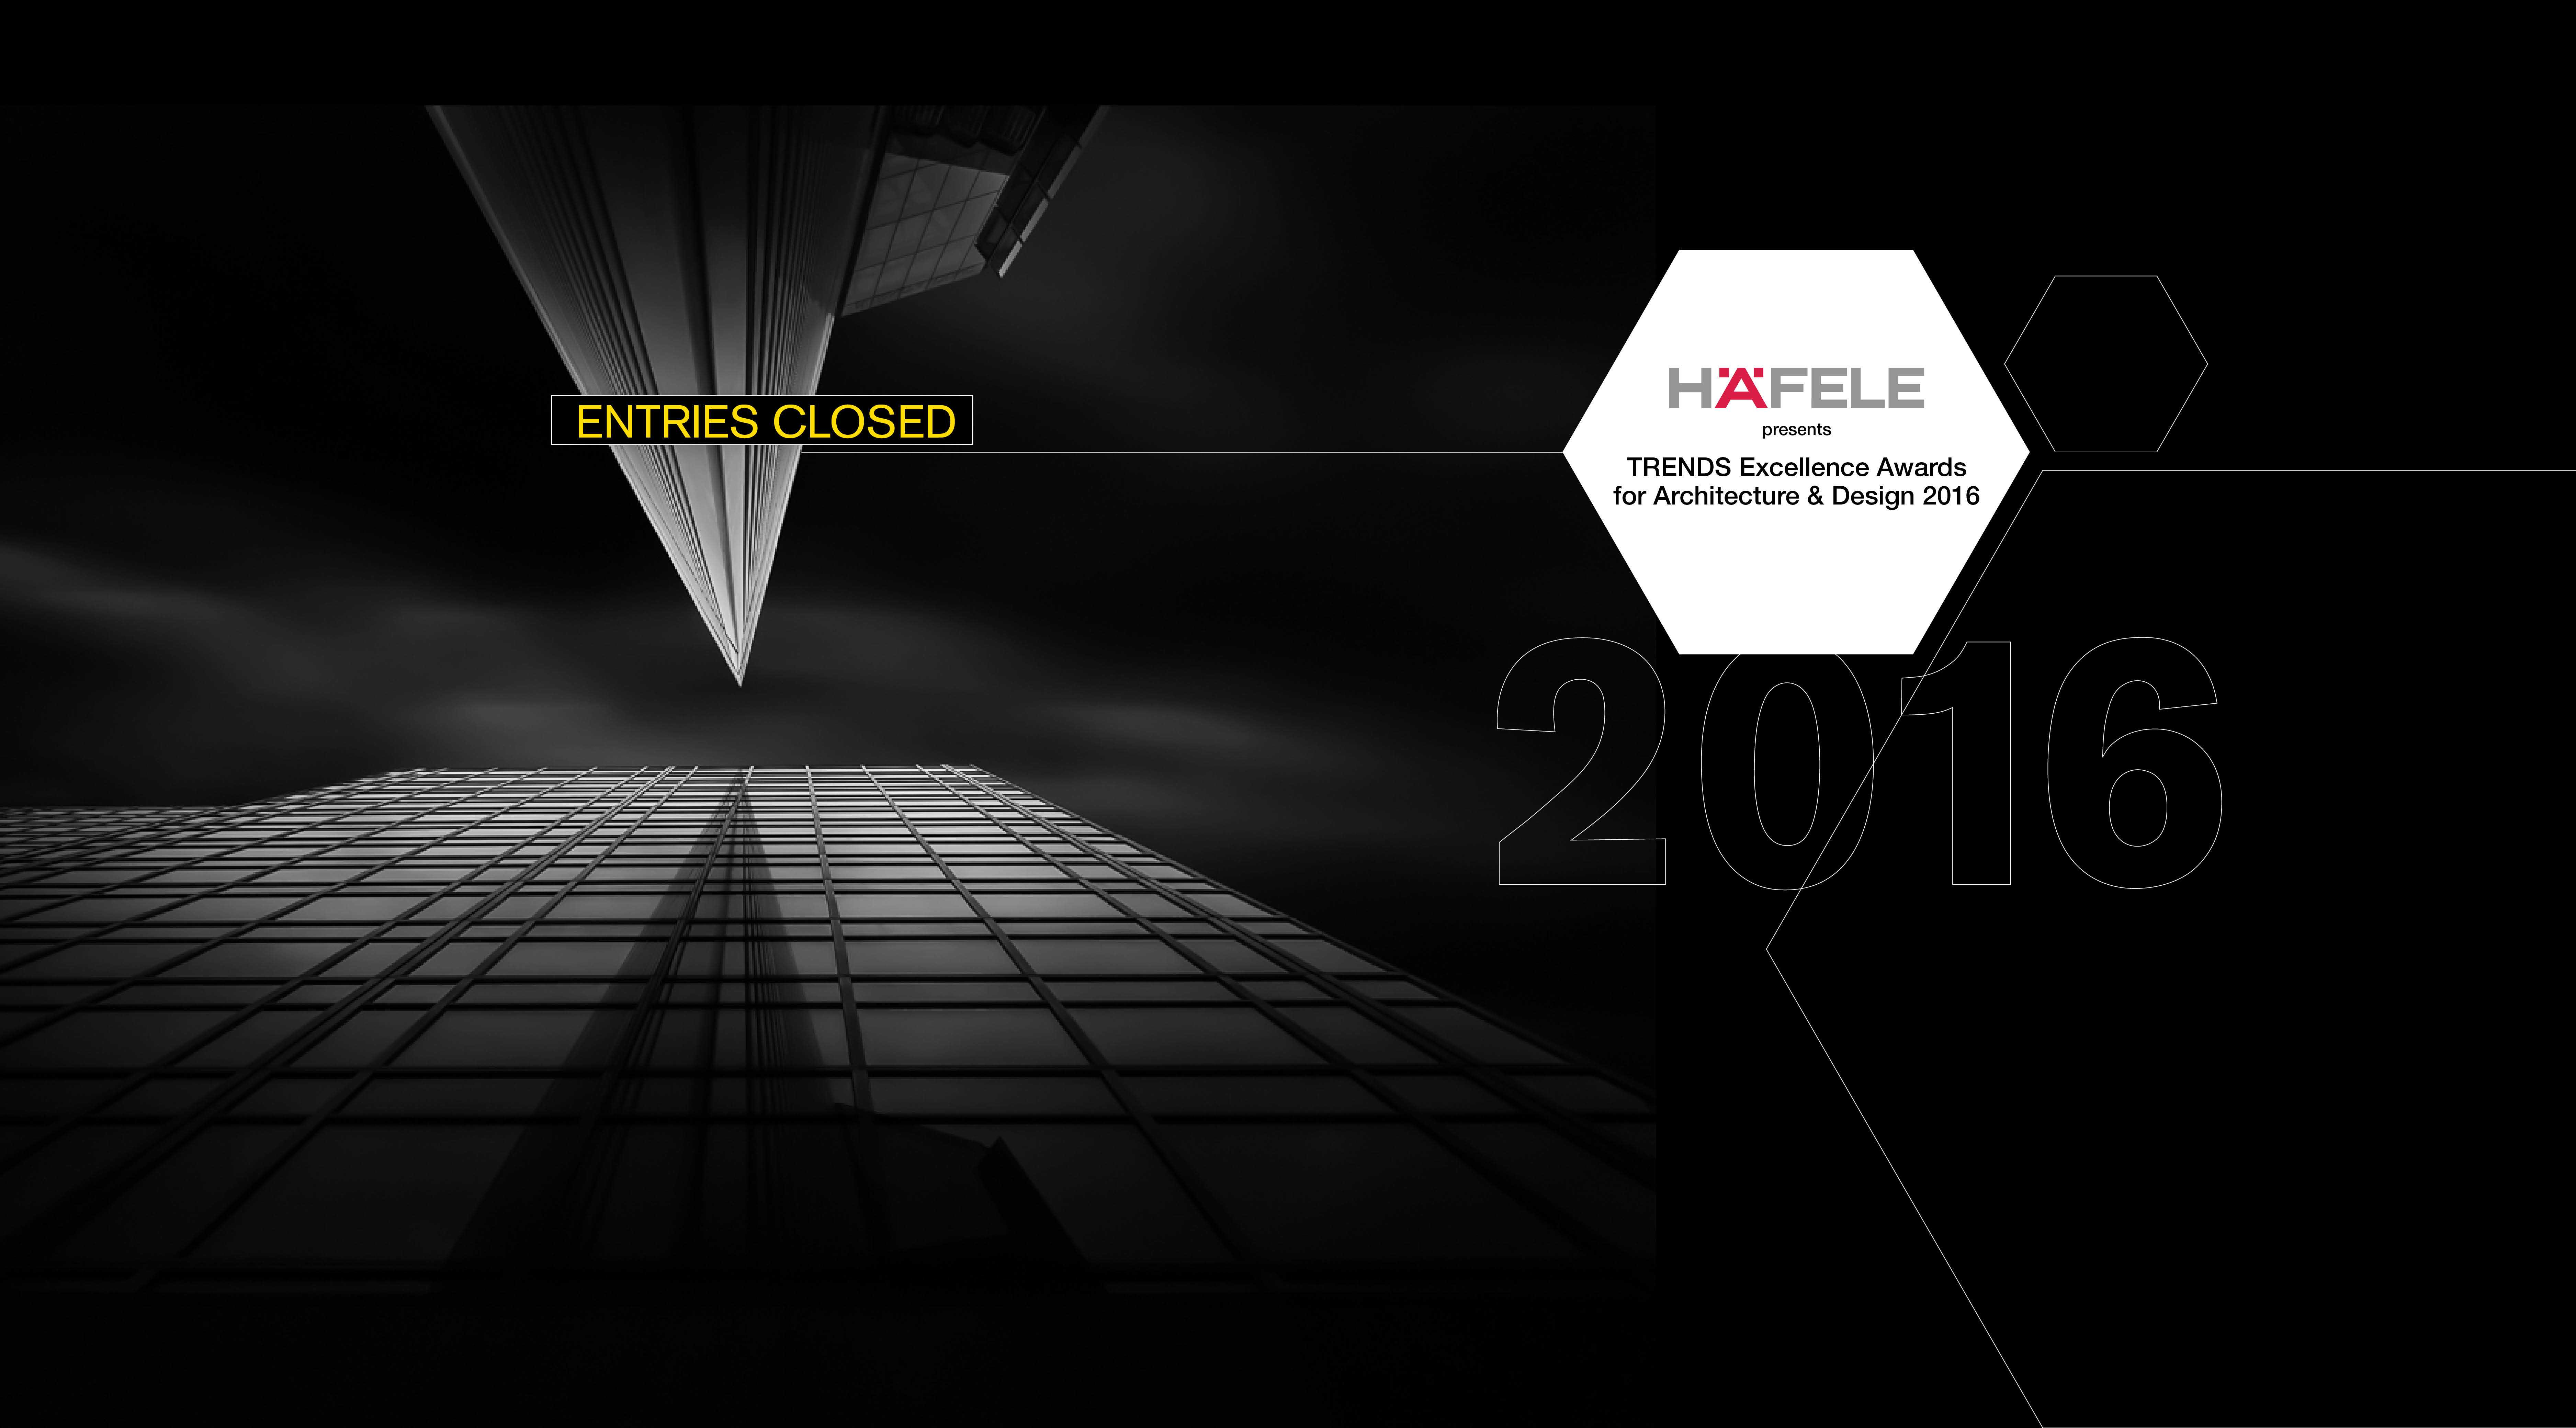 Hafele presents - TRENDS Excellence Awards for Architecture and Design 2015